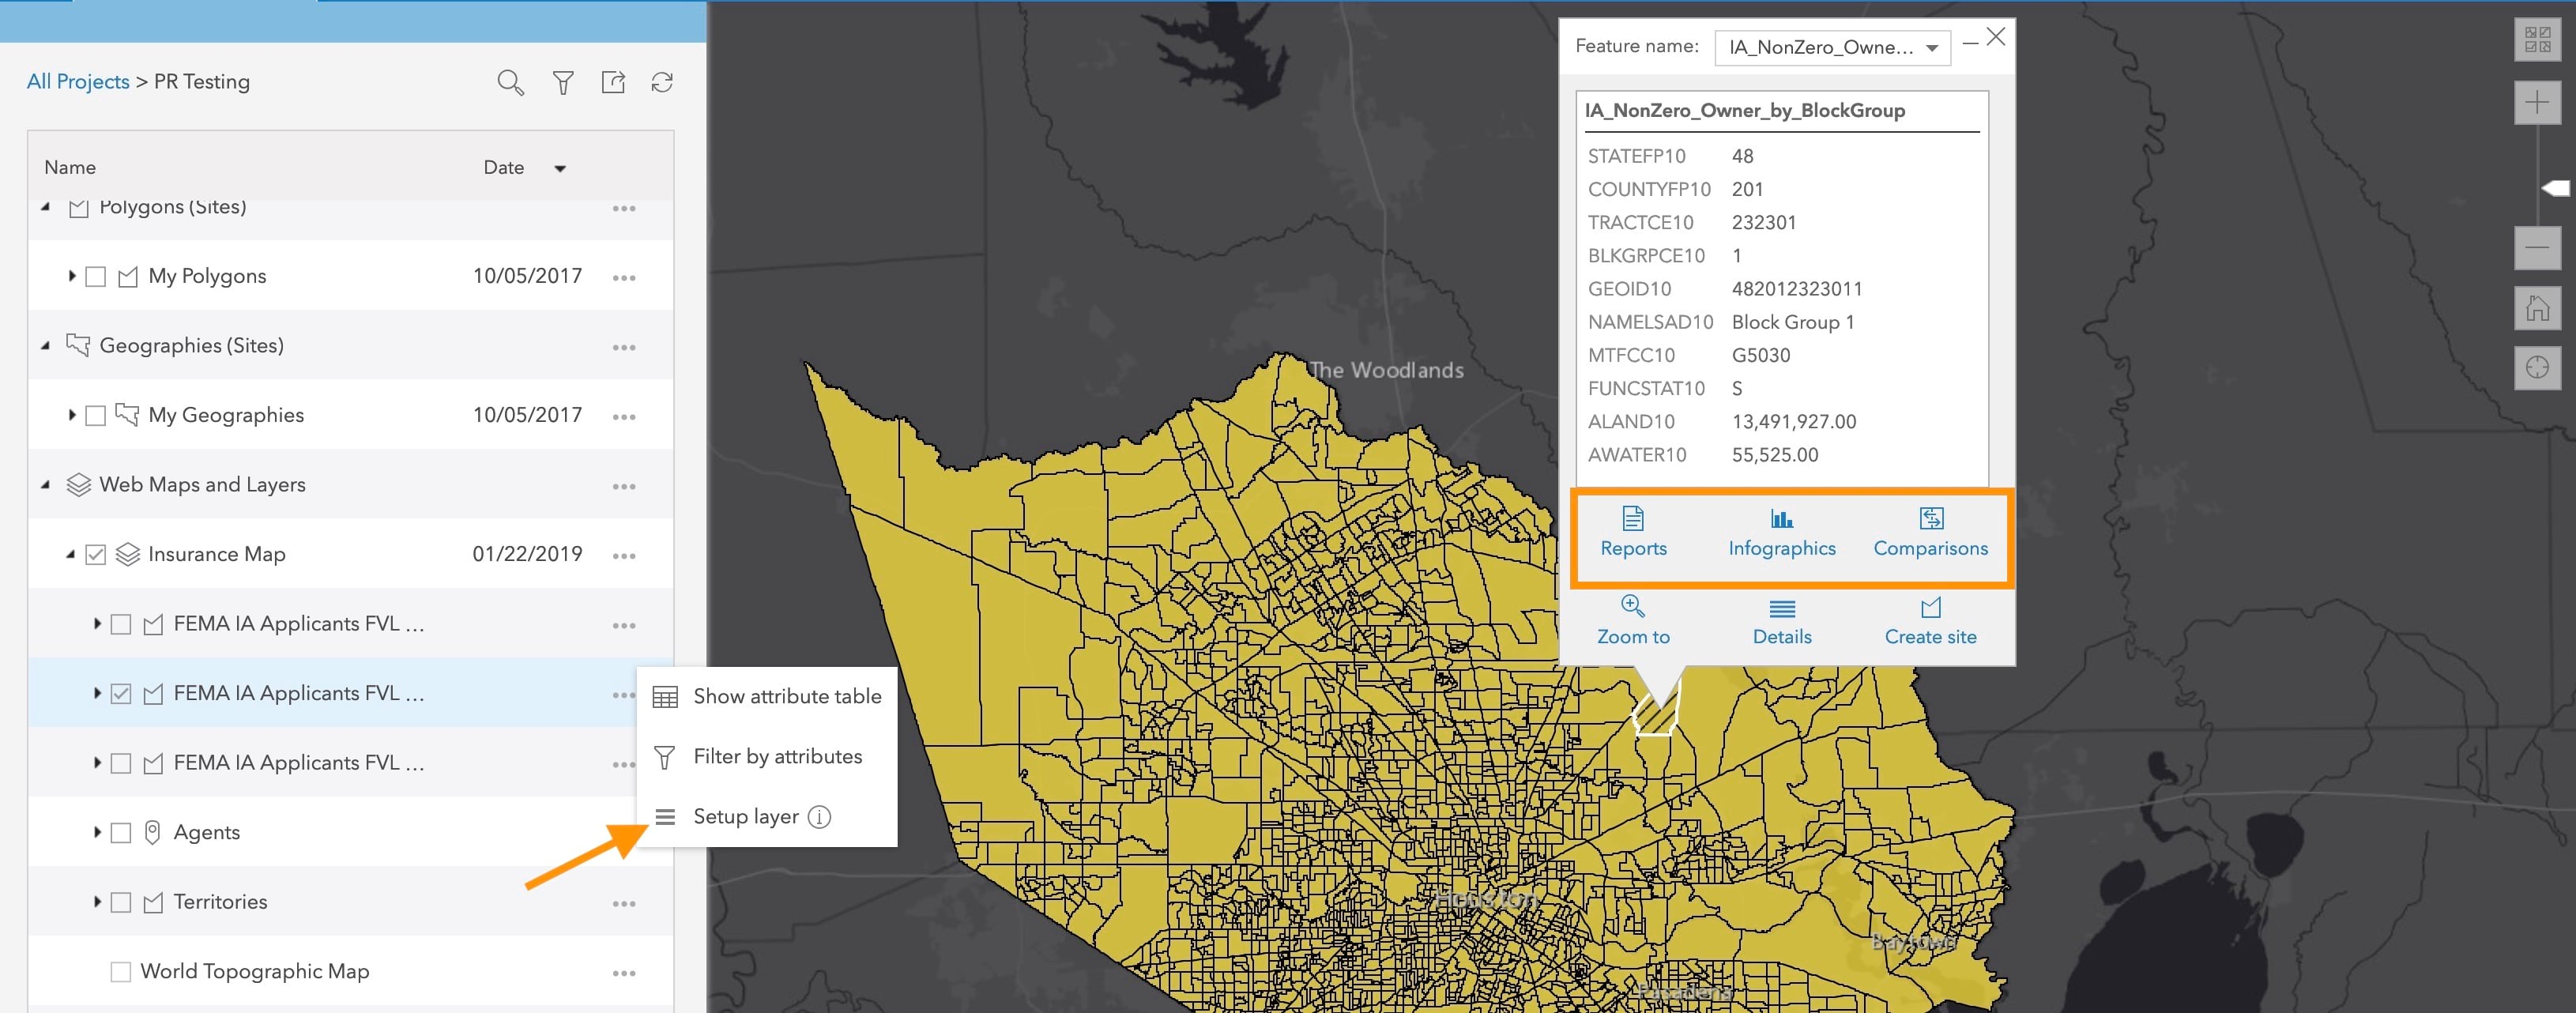 A black and gray basemap with a web layer from ArcGIS Online referenced in yellow.